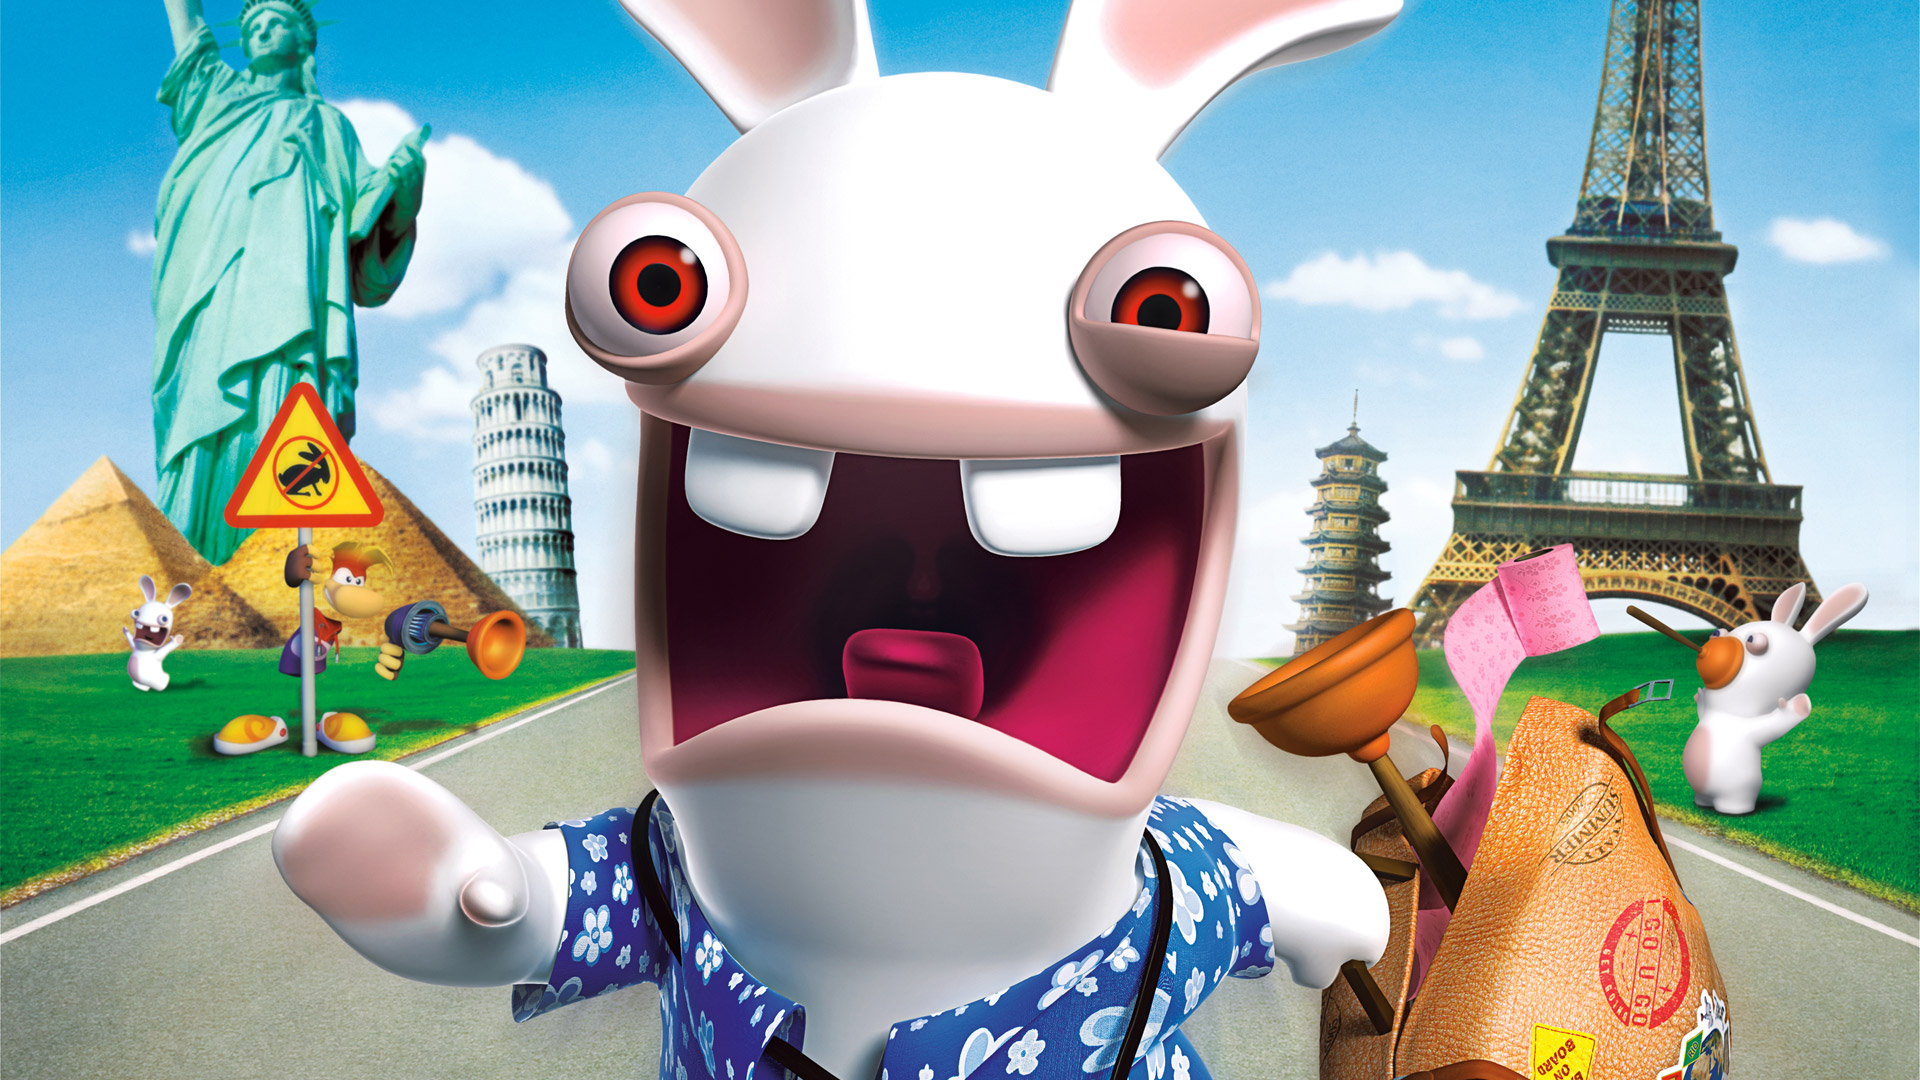 Free Rayman Raving Rabbids 2 Wallpaper in 1920x1080